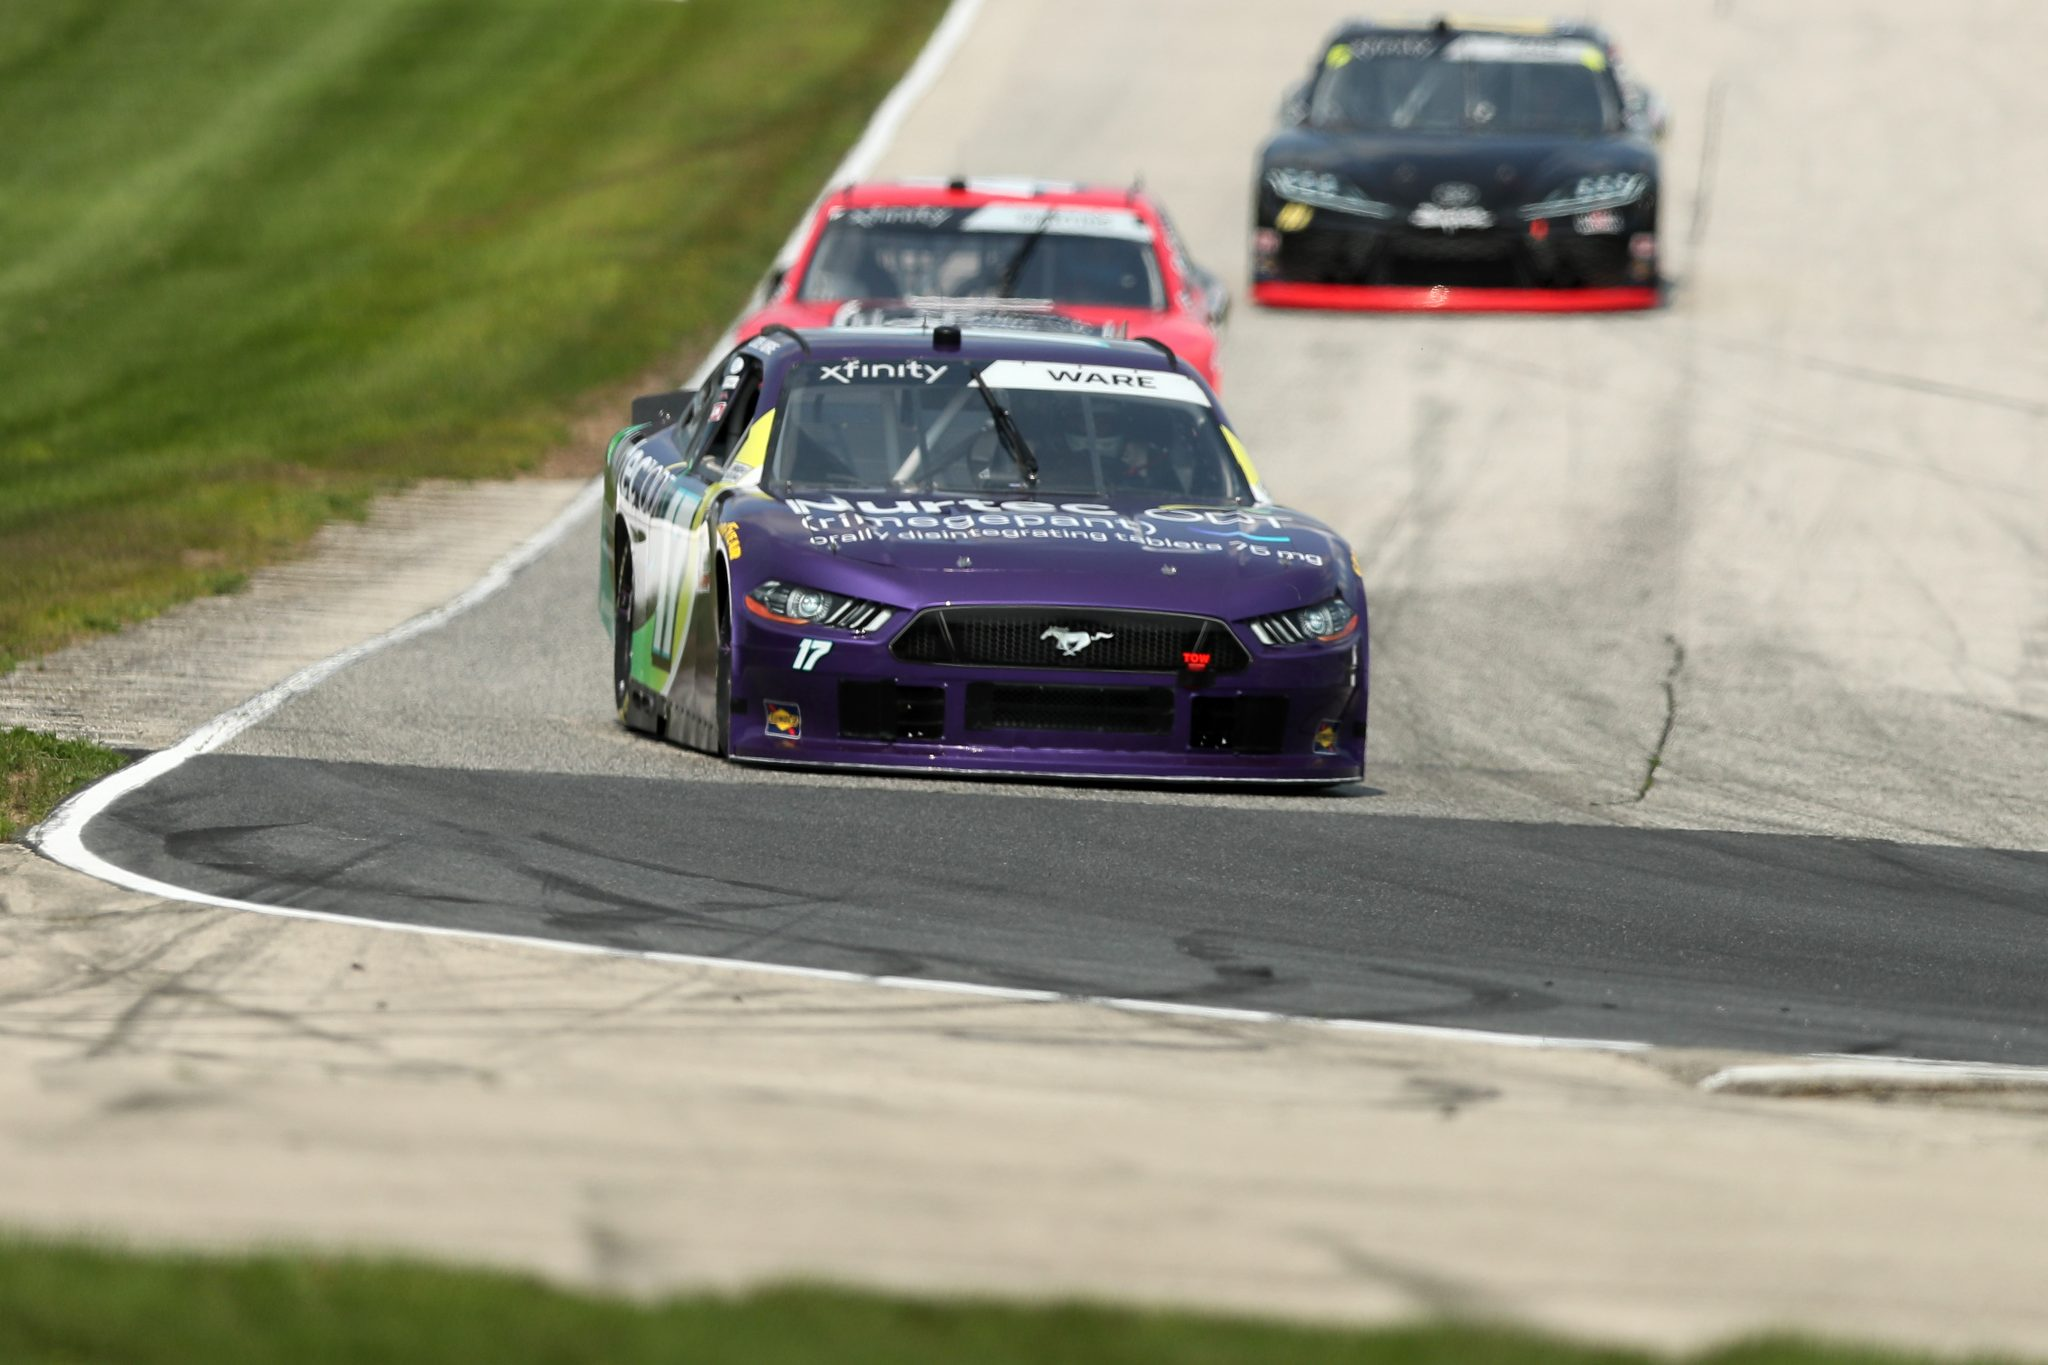 ELKHART LAKE, WISCONSIN - JULY 02: Cody Ware, driver of the #17 Nurtec ODT Ford, drives during practice for the NASCAR Xfinity Series Henry 180 at Road America on July 02, 2021 in Elkhart Lake, Wisconsin. (Photo by James Gilbert/Getty Images)   Getty Images